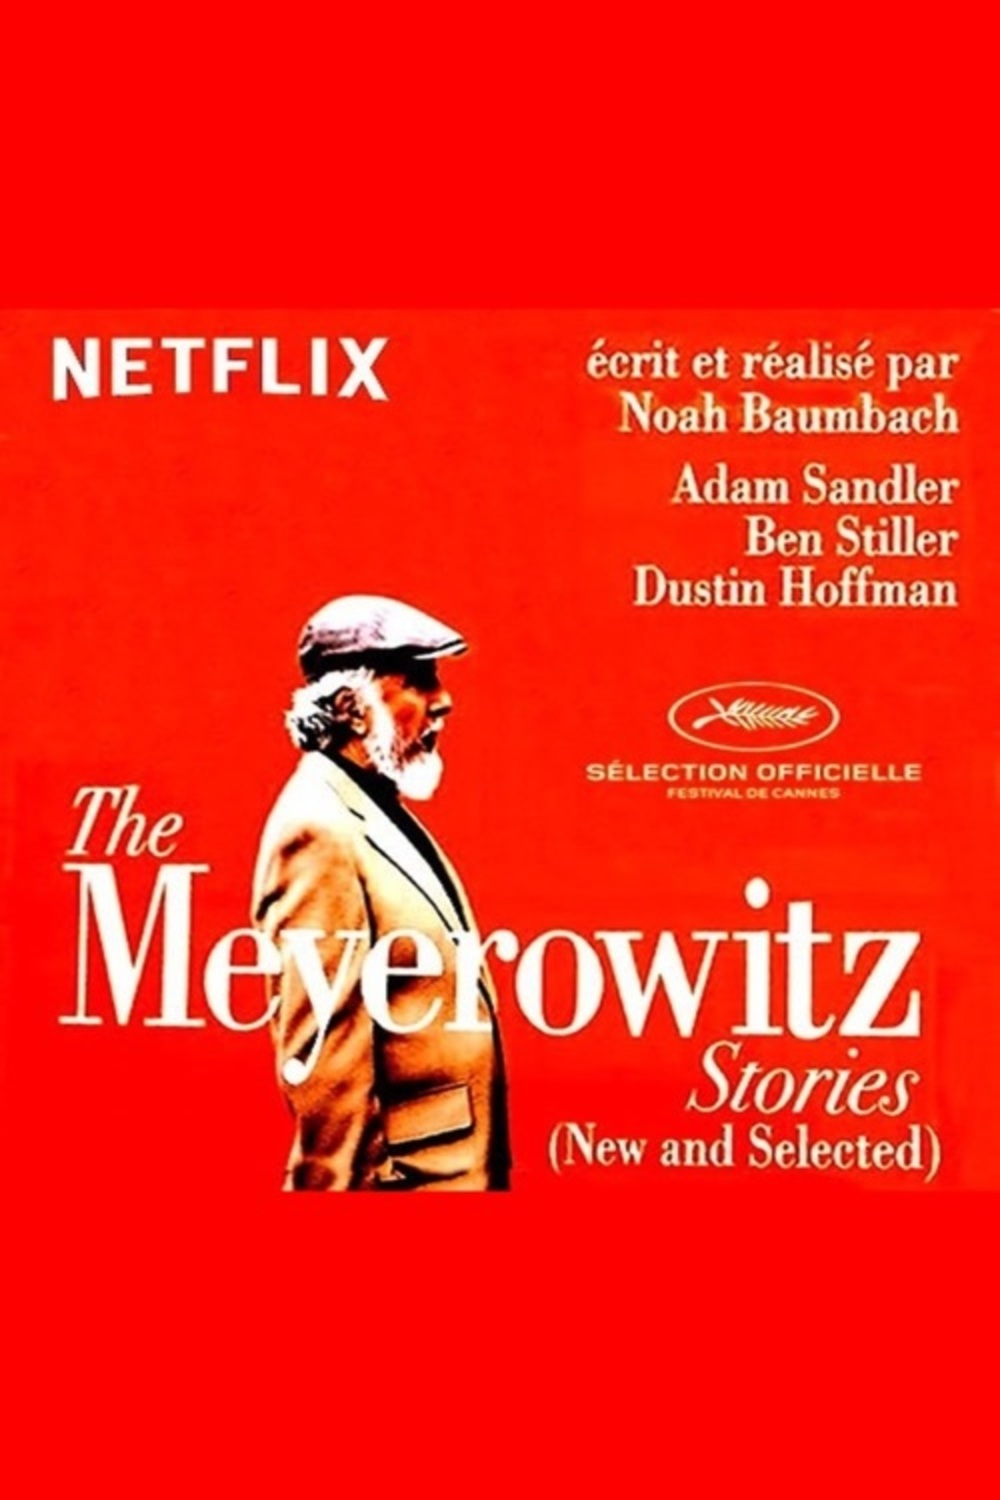 The Meyerowitz Stories (New and Selected) | Fandíme filmu